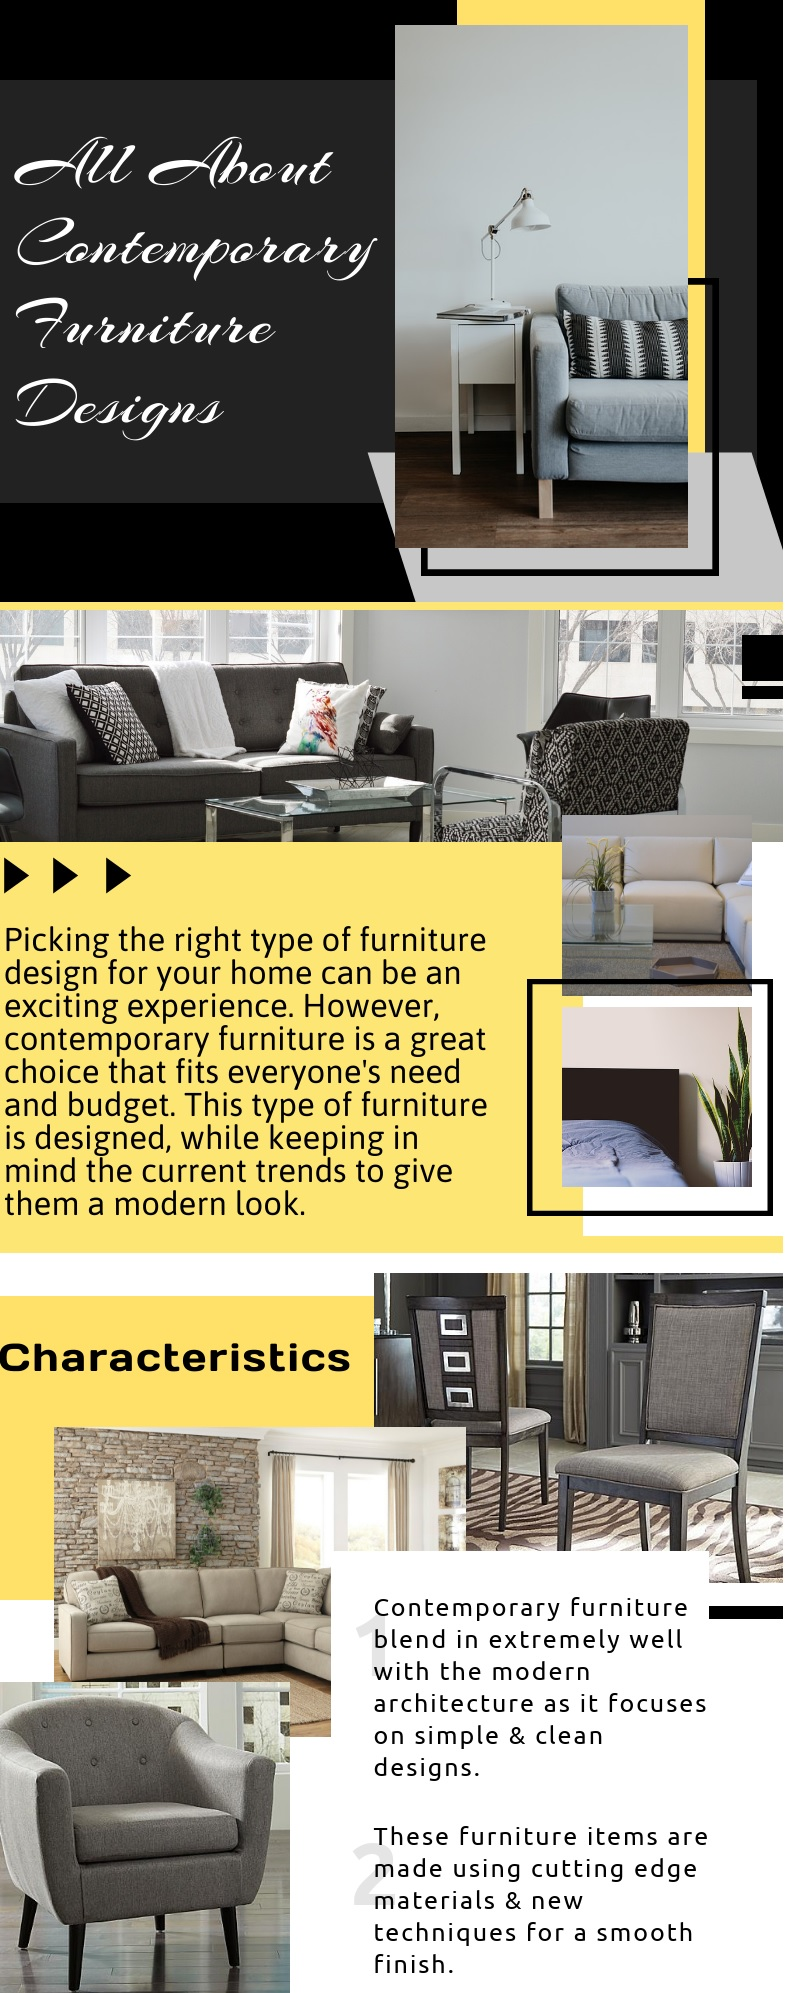 All About Contemporary Furniture Design